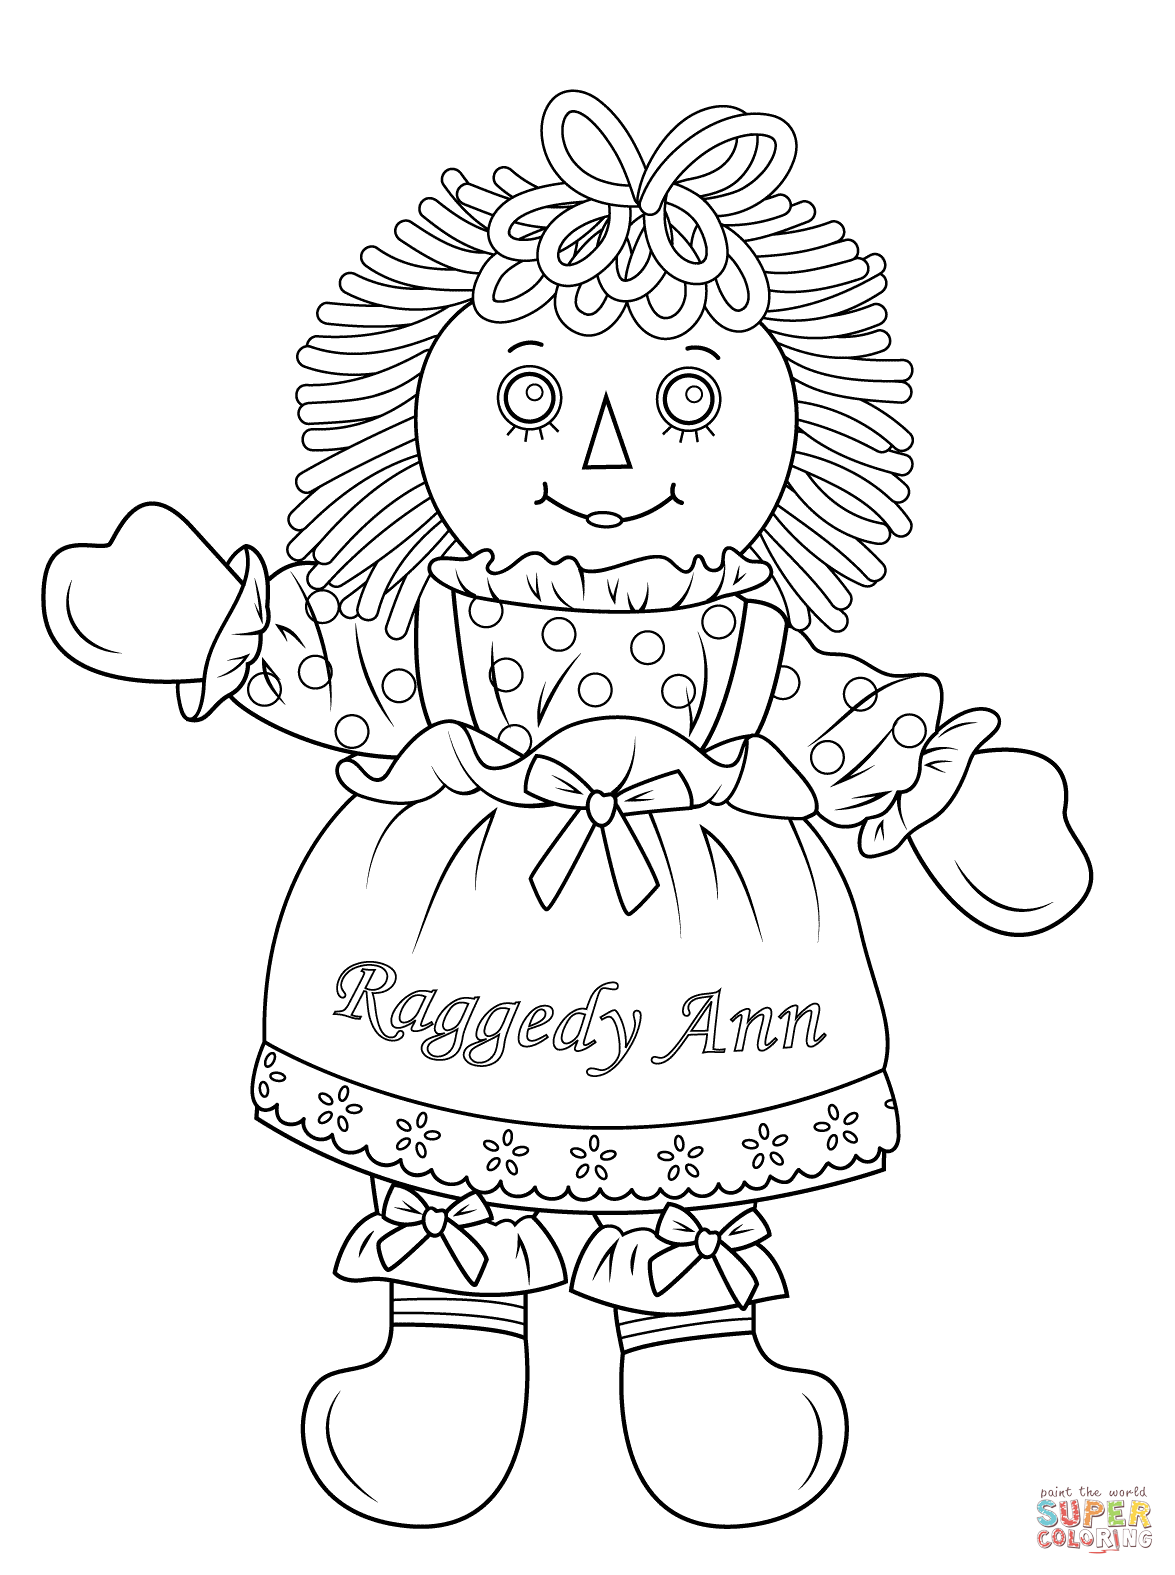 Cabbage Patch Doll Coloring Page